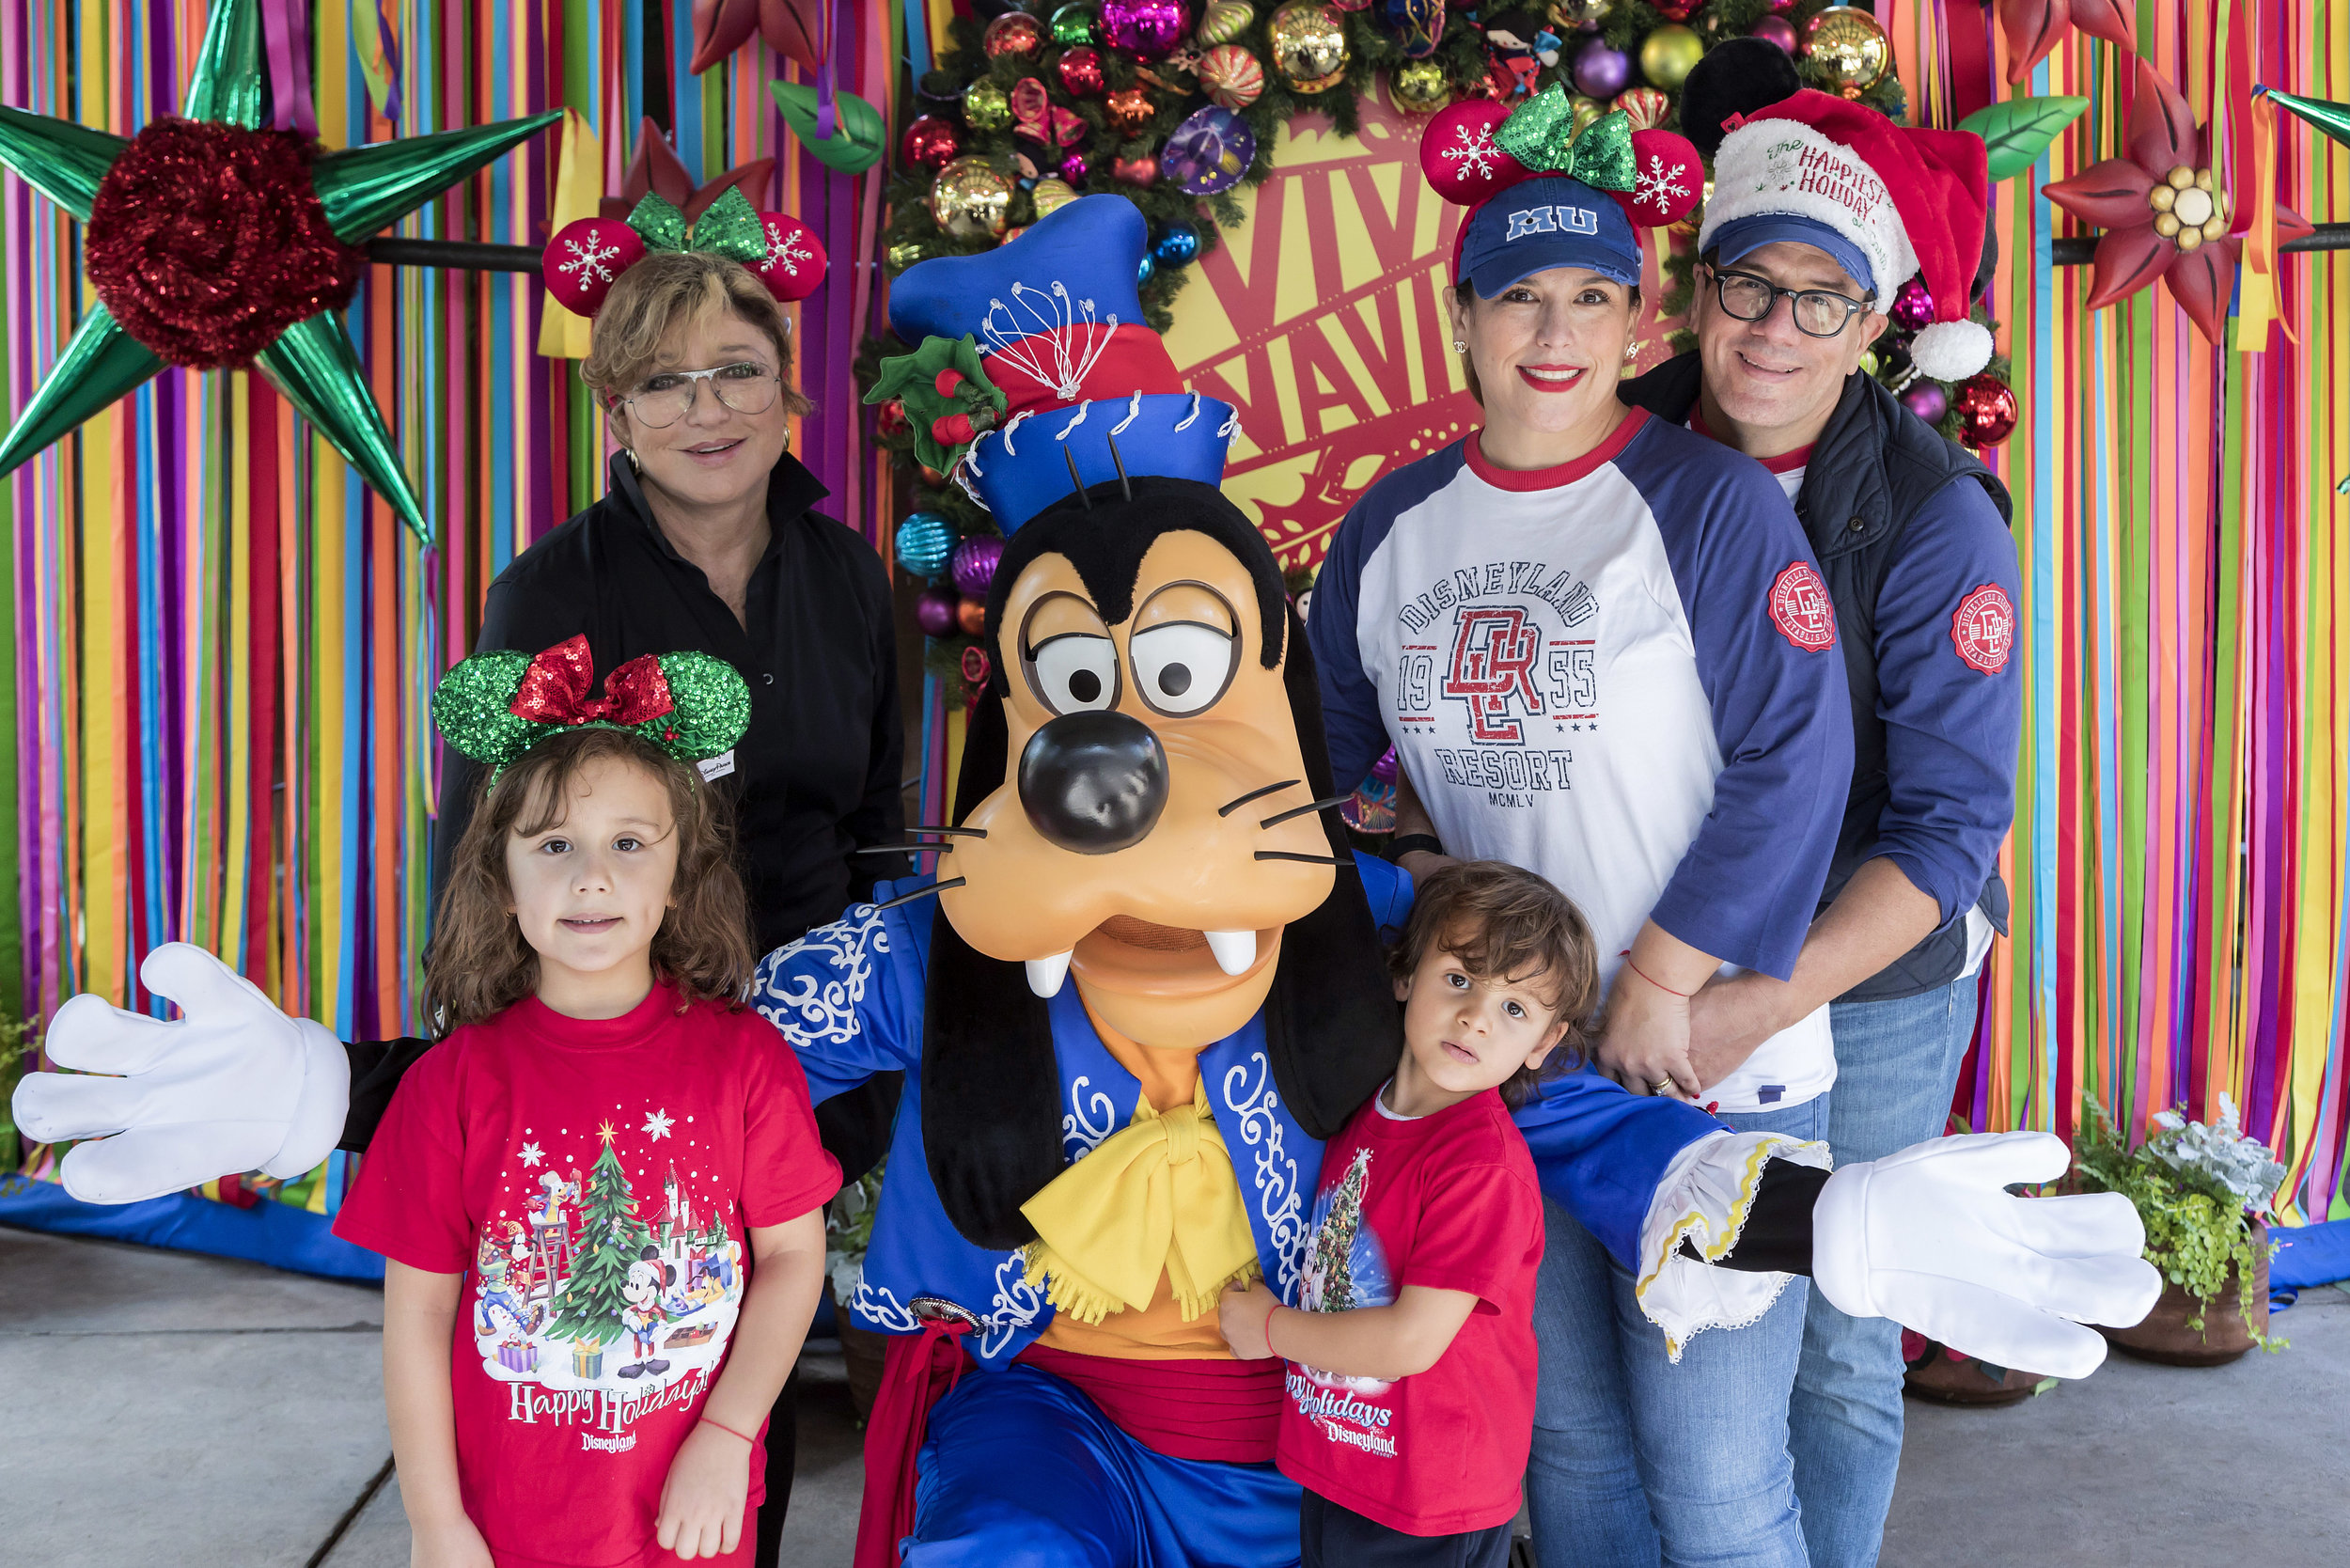 Angelica Maria and Angelica Vale at Disney California Adventure Park - Disneyland Resort - 12/22/18. (Joshua Sudock/Disneyland Resort)